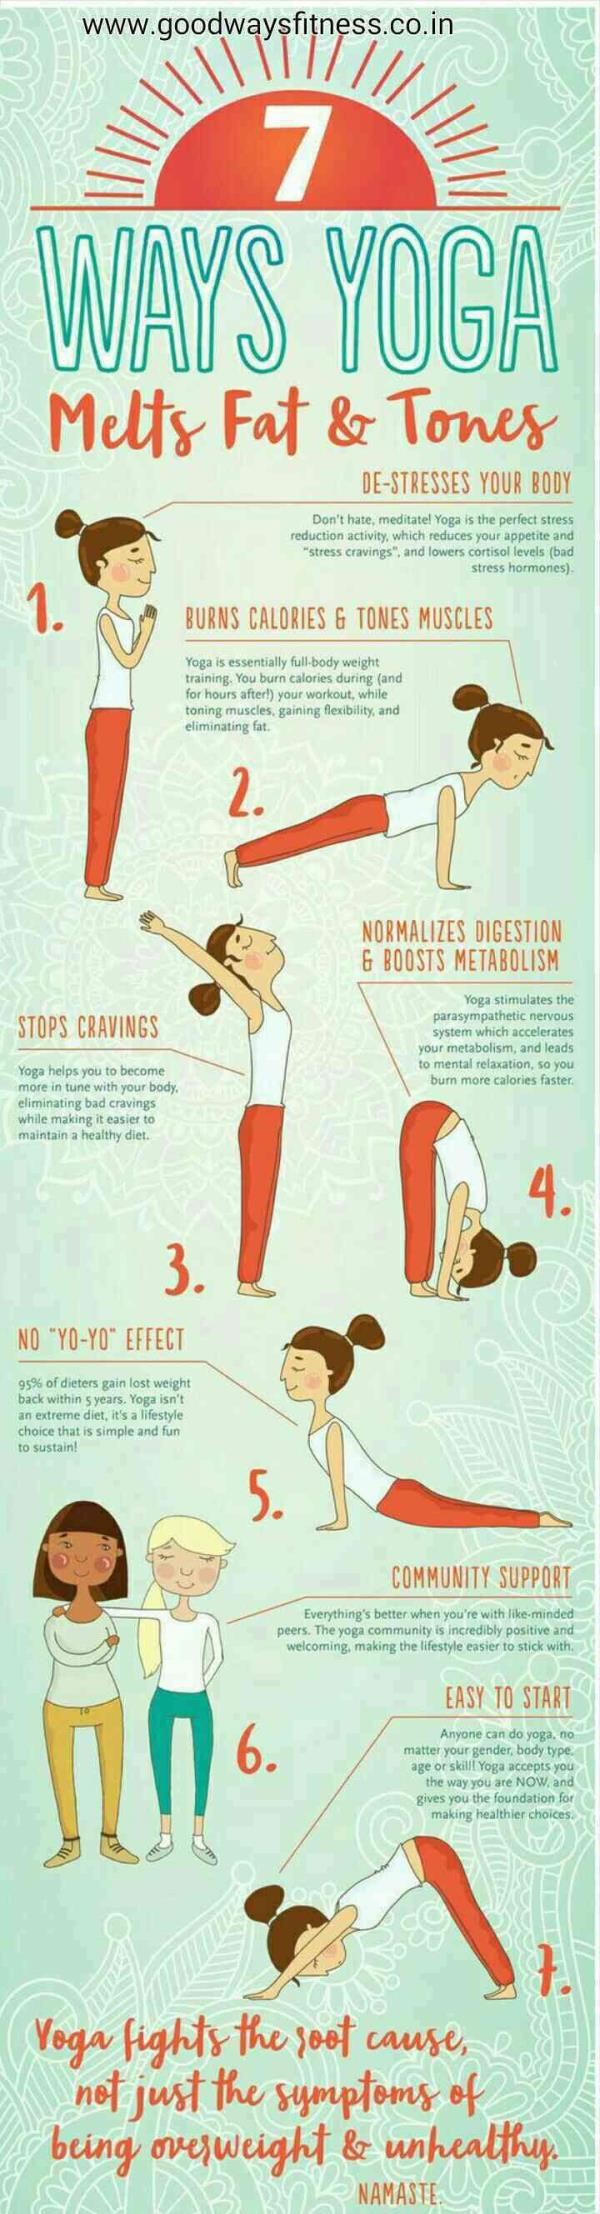 yoga asanas and exercises help you become aware of your body, mind and the environment around you. yoga asanas have innumerable life-improving benefits as well as the ability to heal. practicing yoga makes you conscious about about your bod - by Goodways Fitness @ 9971927915, Delhi